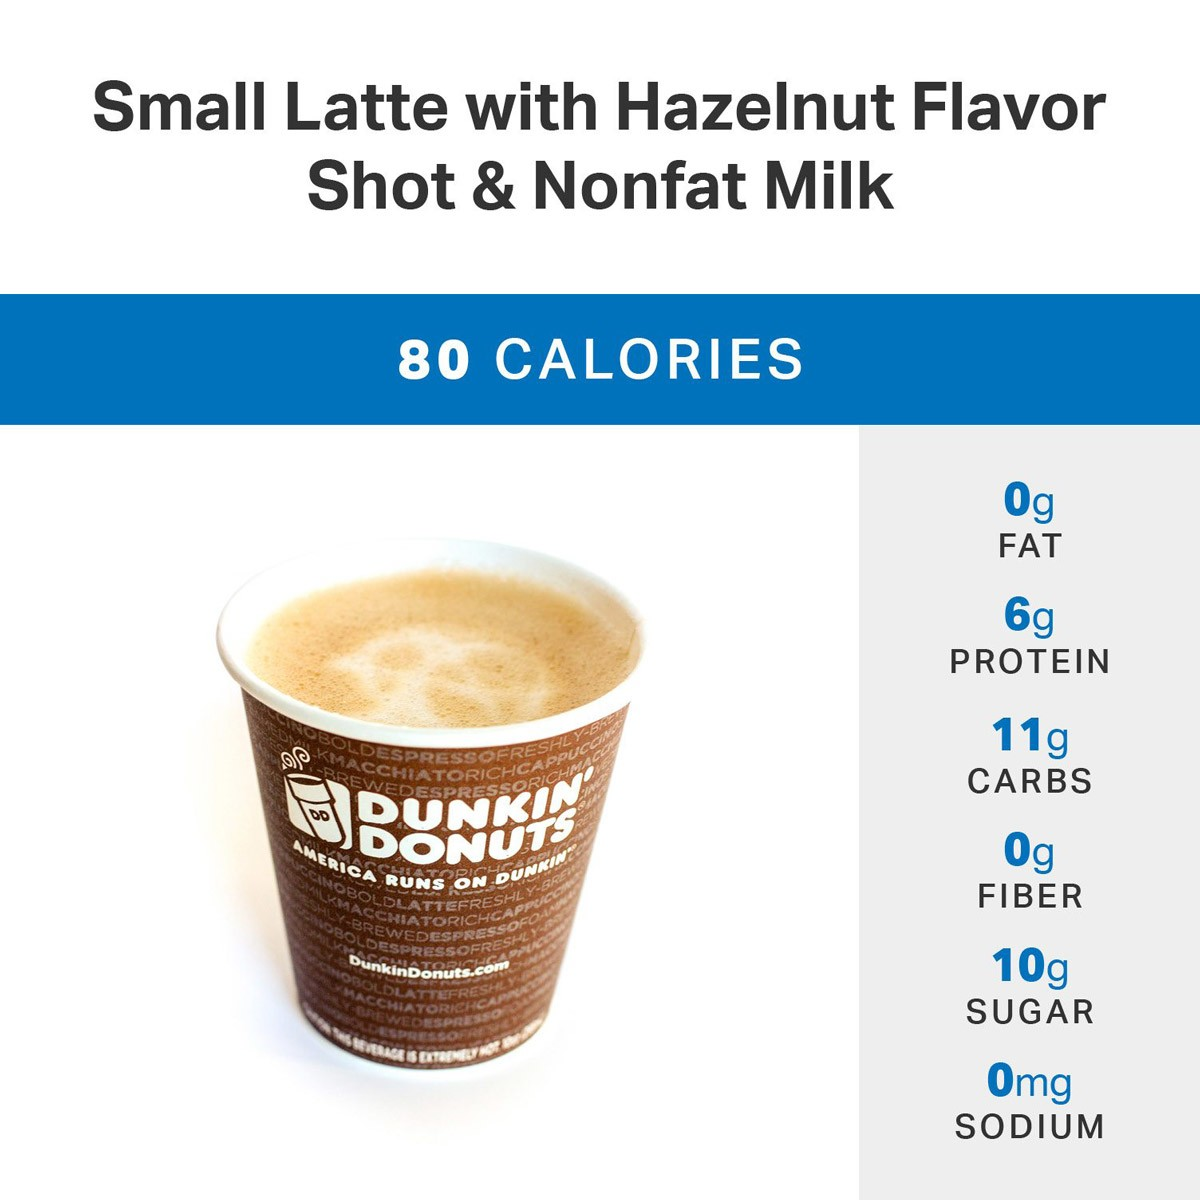 Low fat latte is one of the best beverages to help boost physical energy